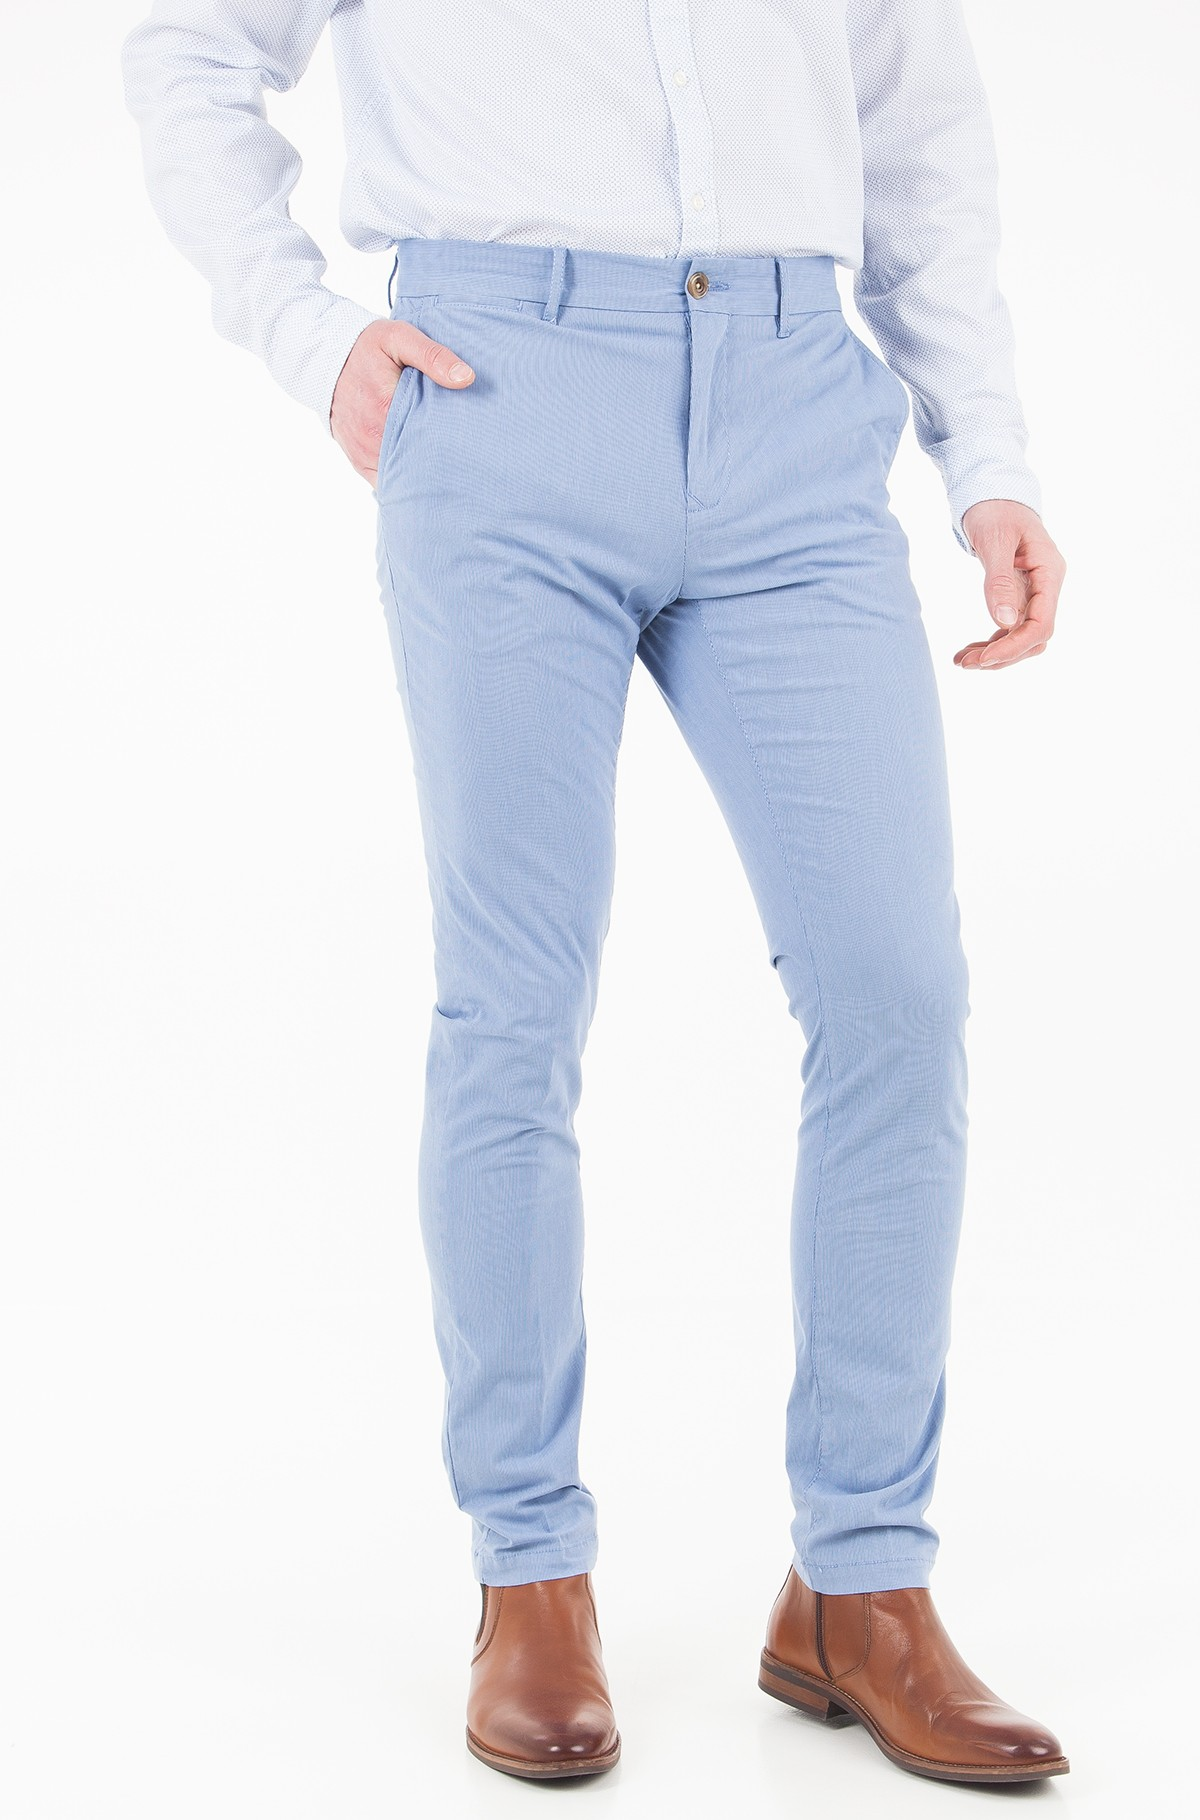 Trousers Denton Chino Str Lt Wt Yd Stripe-full-1